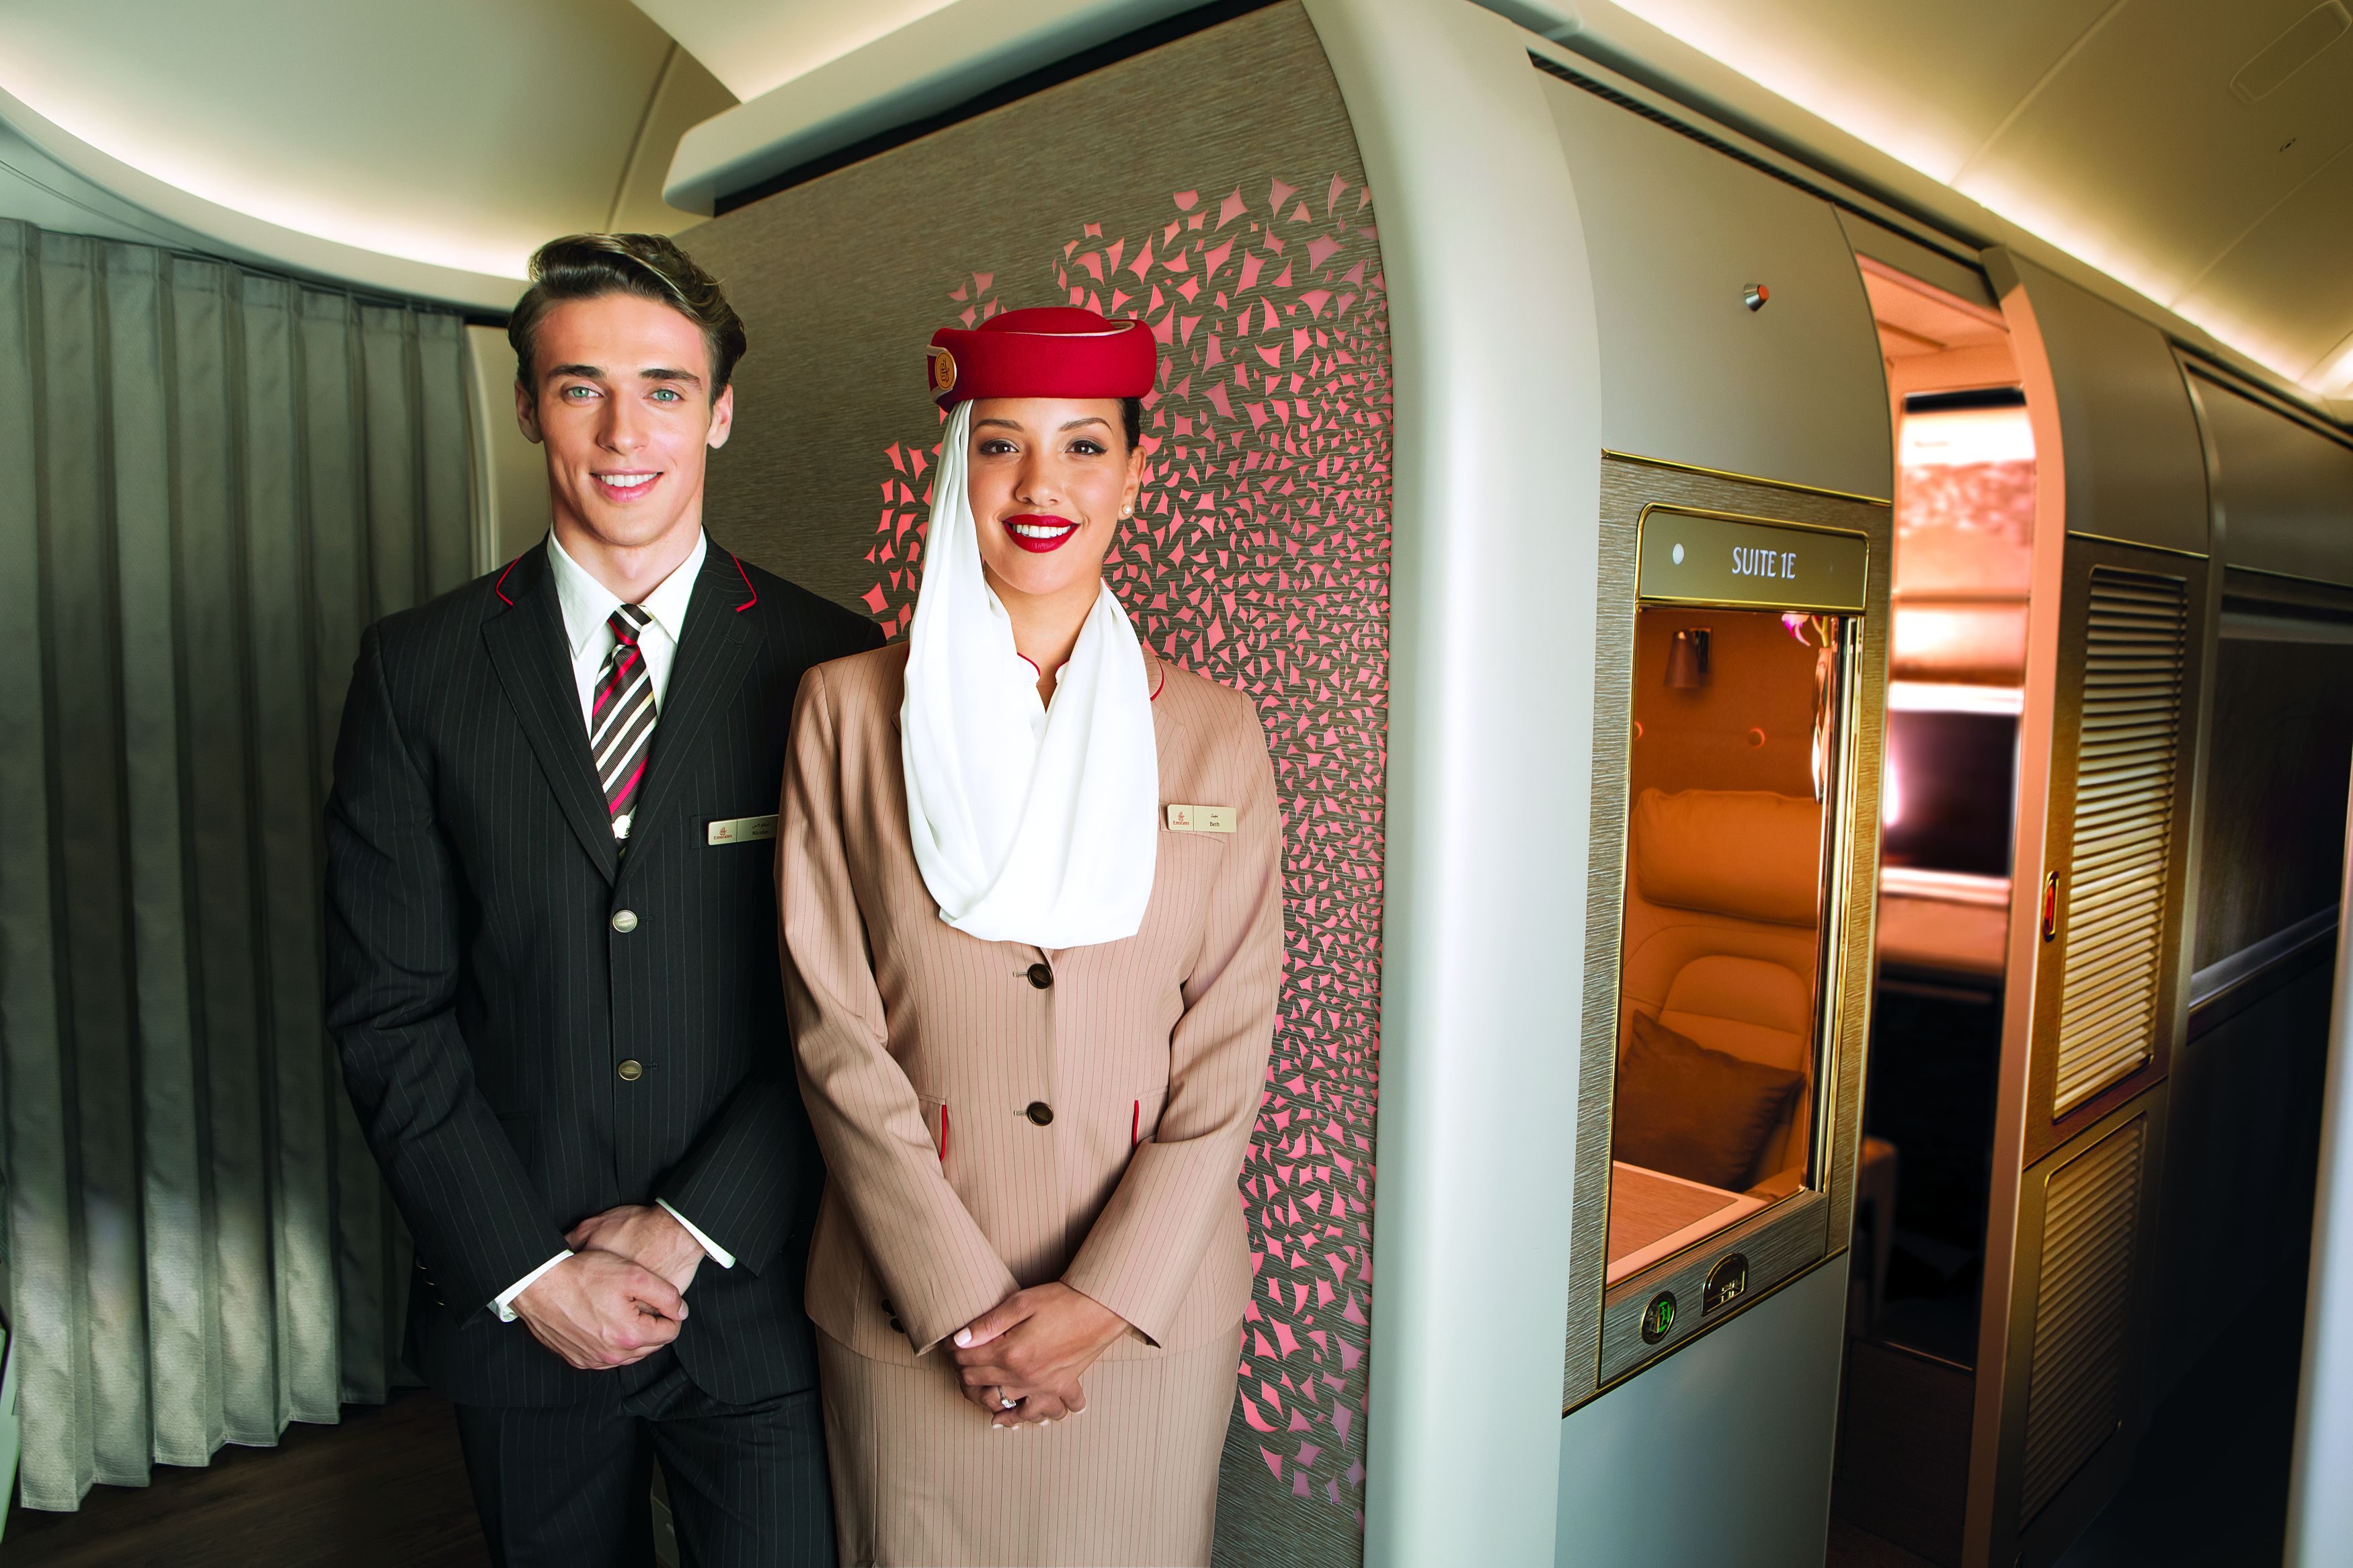 Emirates is looking for future Cabin Crew members in the